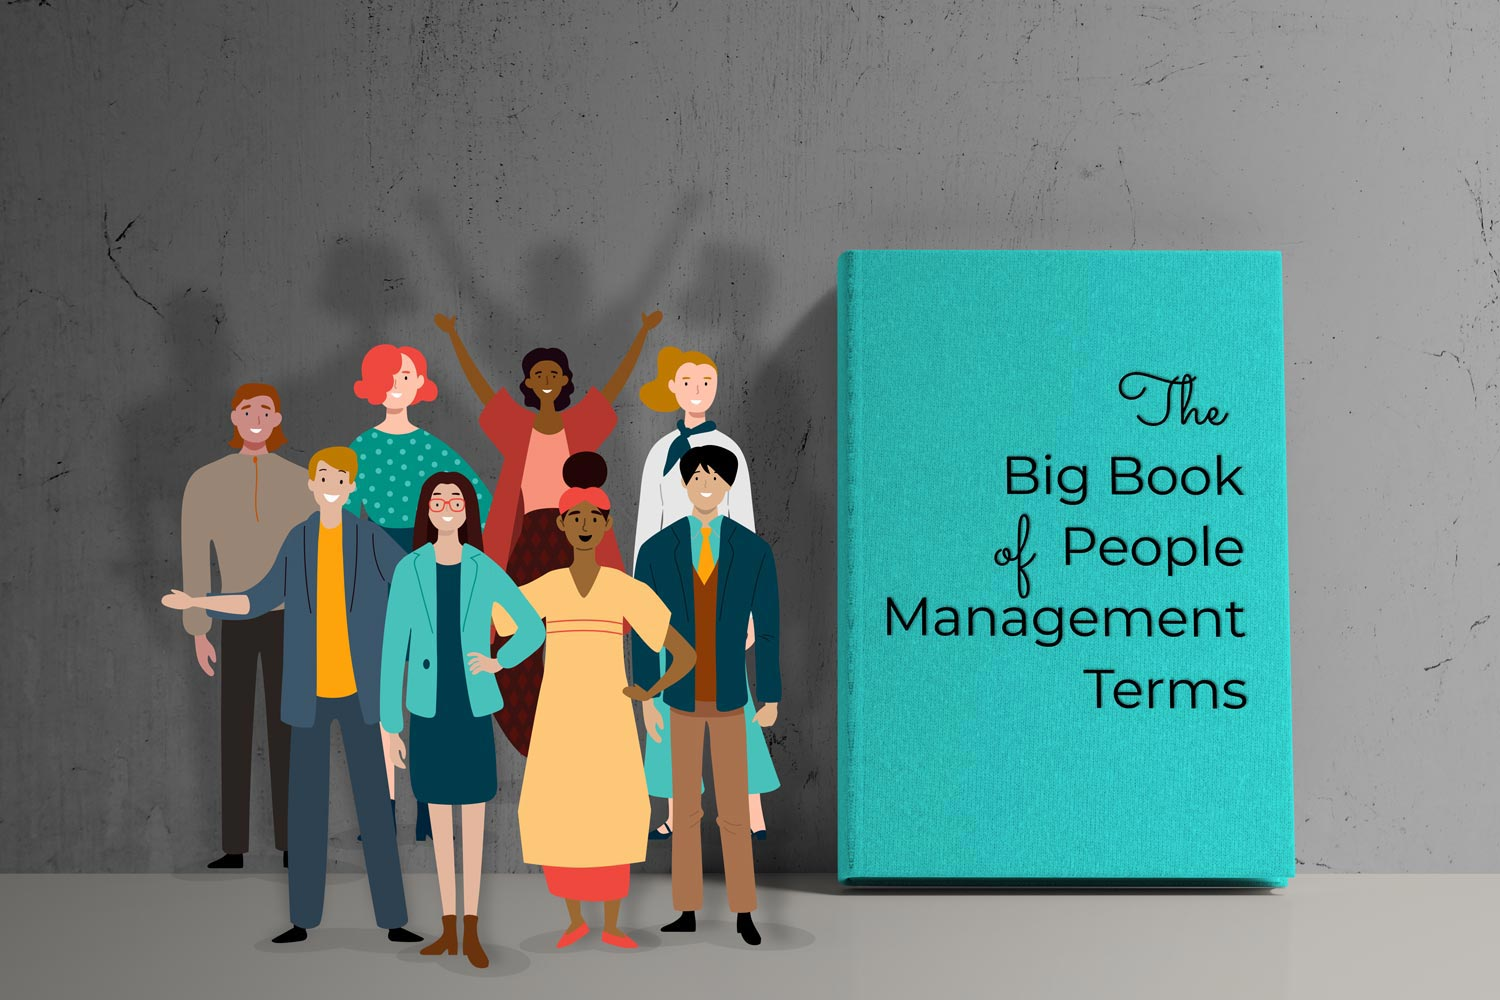 The Big Book of People Management Terms